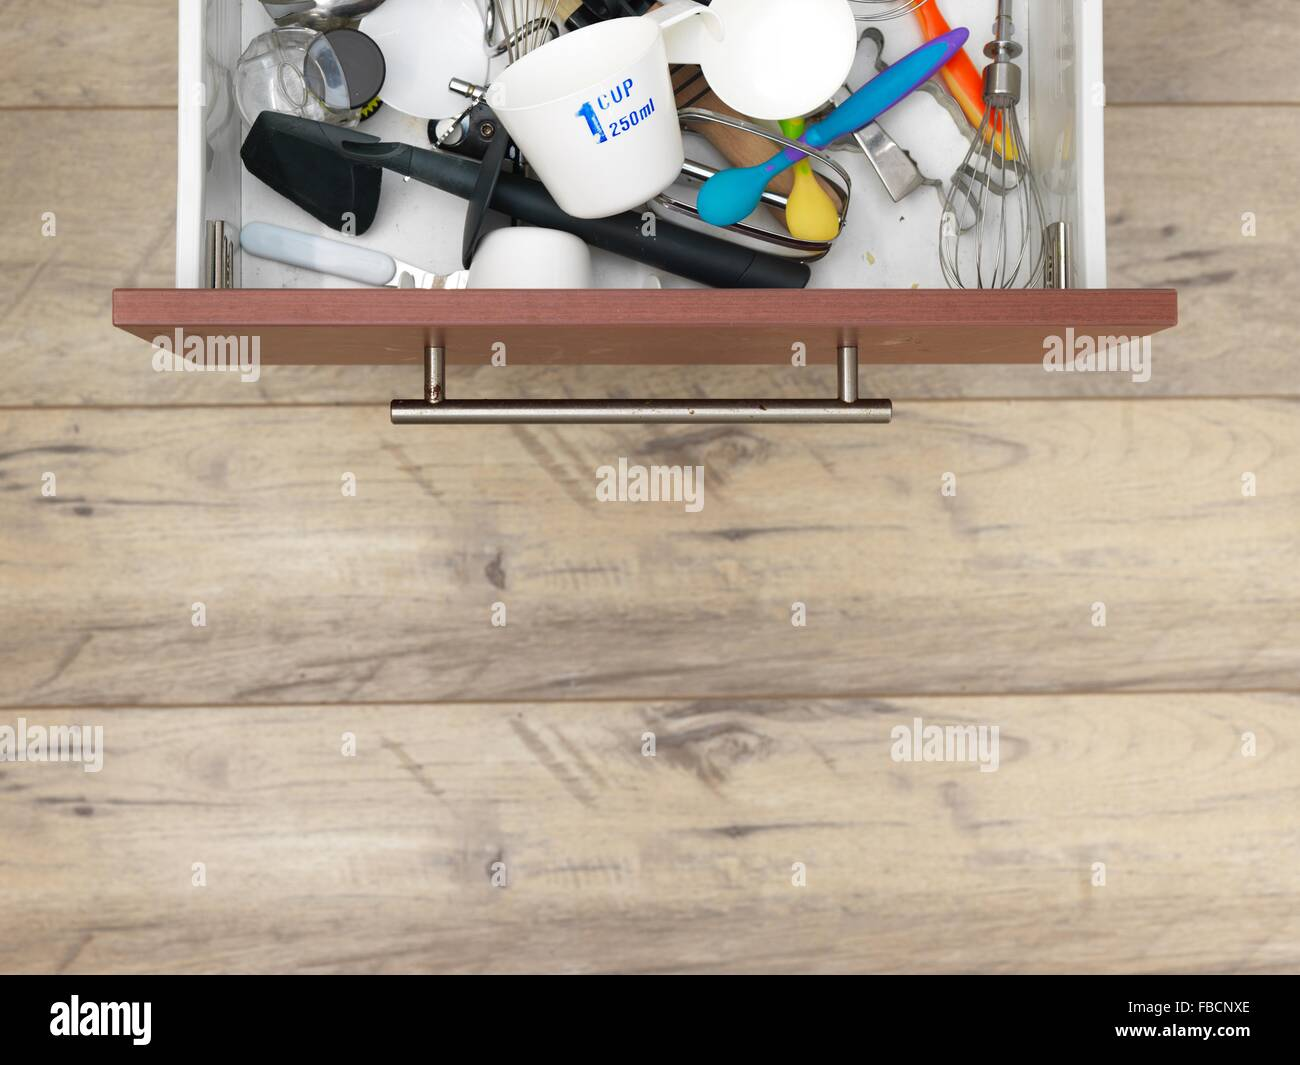 A studio photo of a kitchen drawer - Stock Image